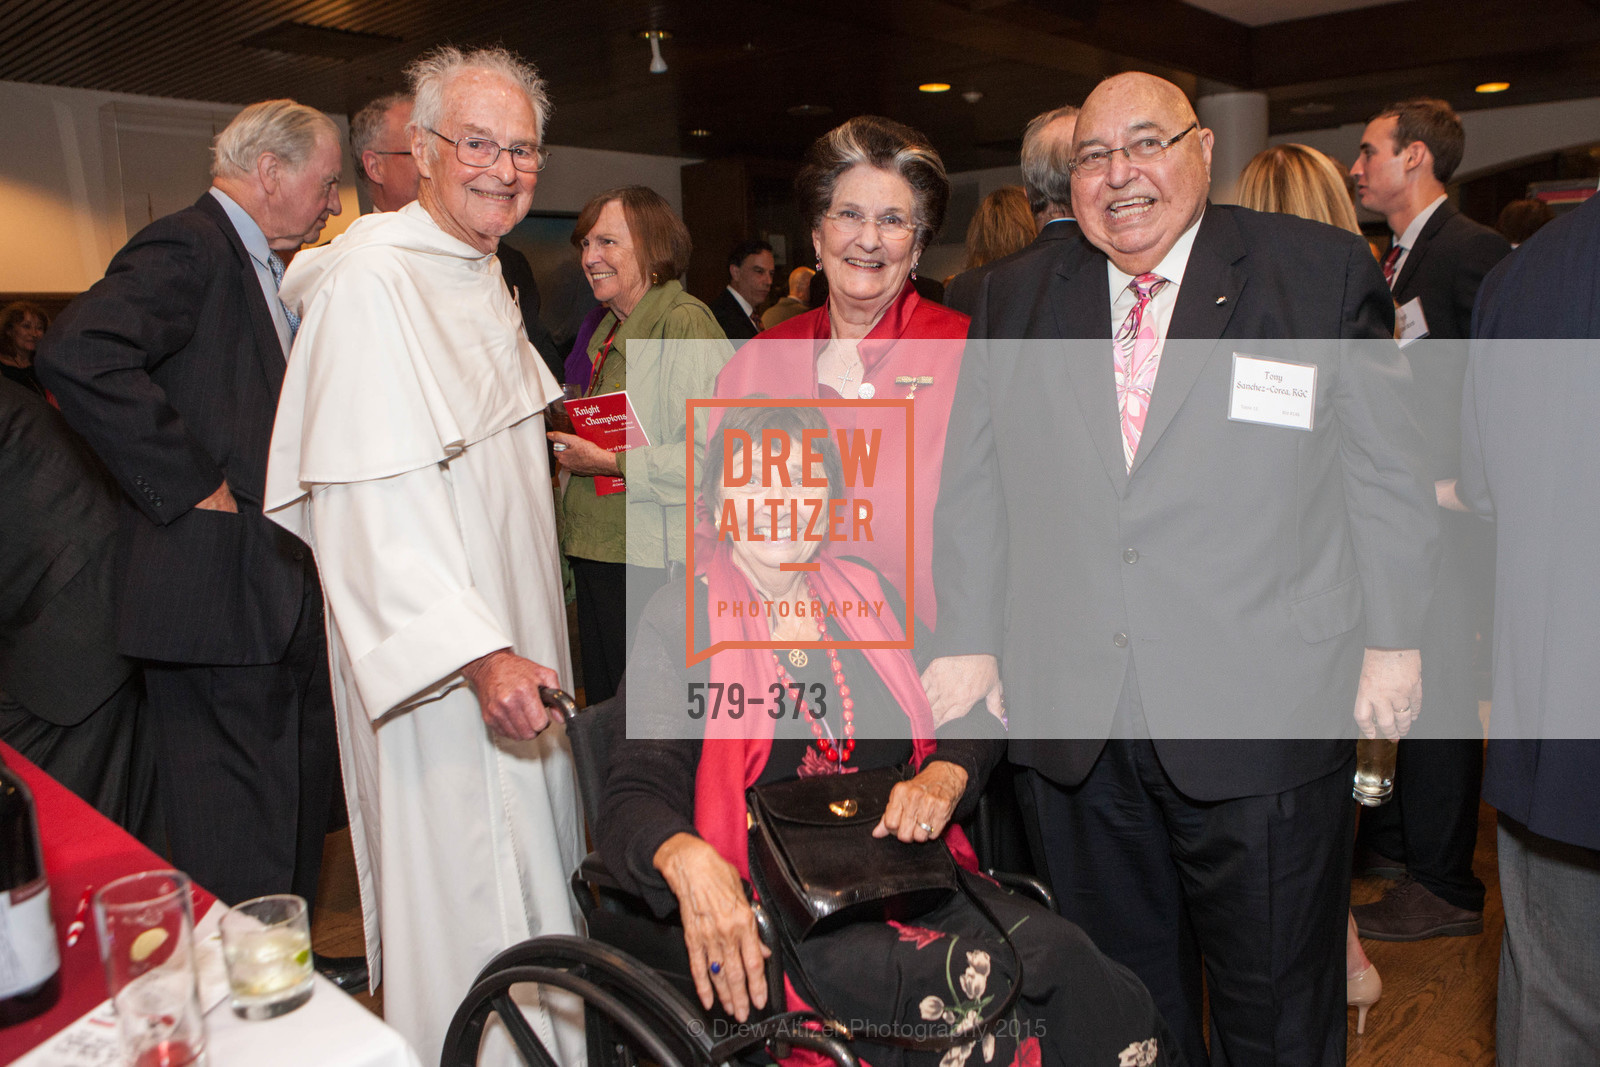 Bruno Gibson, Marilyn Knight, Lucille Sanchez-Corea, Tony Sanchez-Corea, Sovereign Order of Malta Presents: A Knight for Champions, 7th Annual Silver Chalice Awards Dinner, St. Francis Yacht Club. 99 Yacht Rd, October 13th, 2015,Drew Altizer, Drew Altizer Photography, full-service agency, private events, San Francisco photographer, photographer california